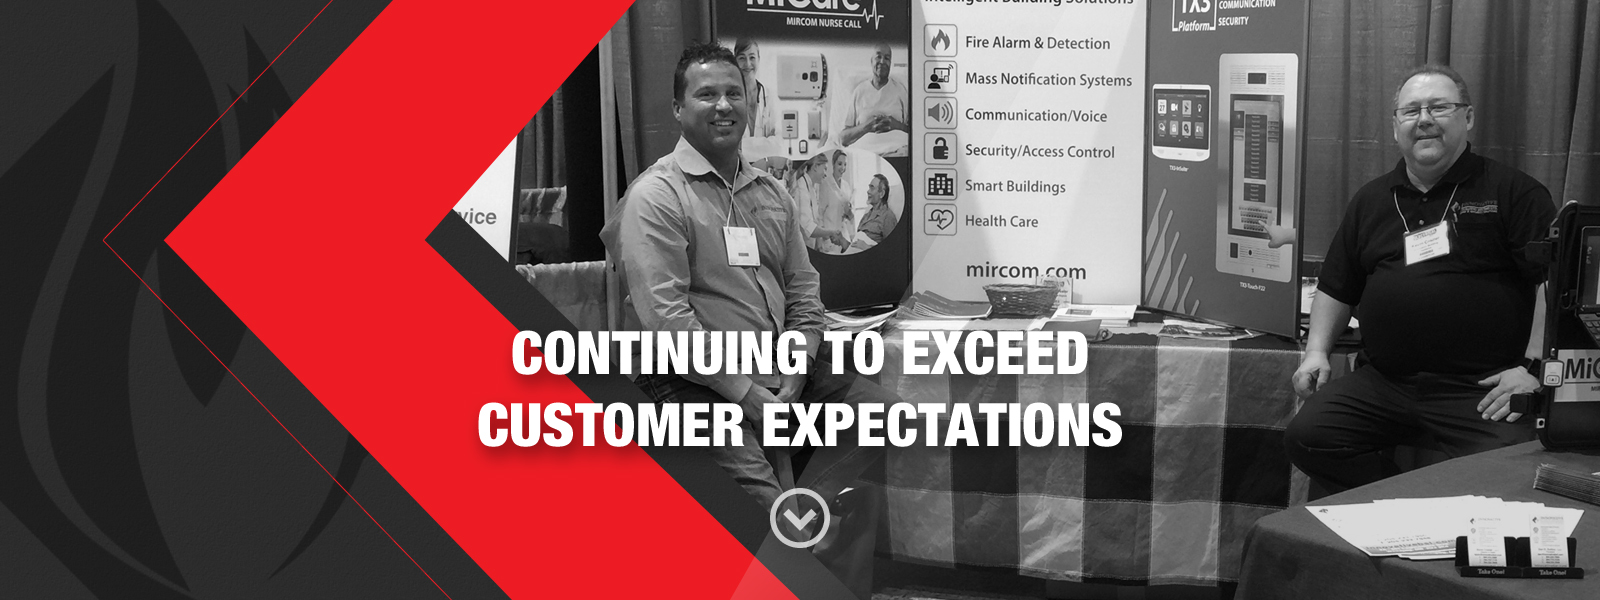 Continuing to exceed customer expectations